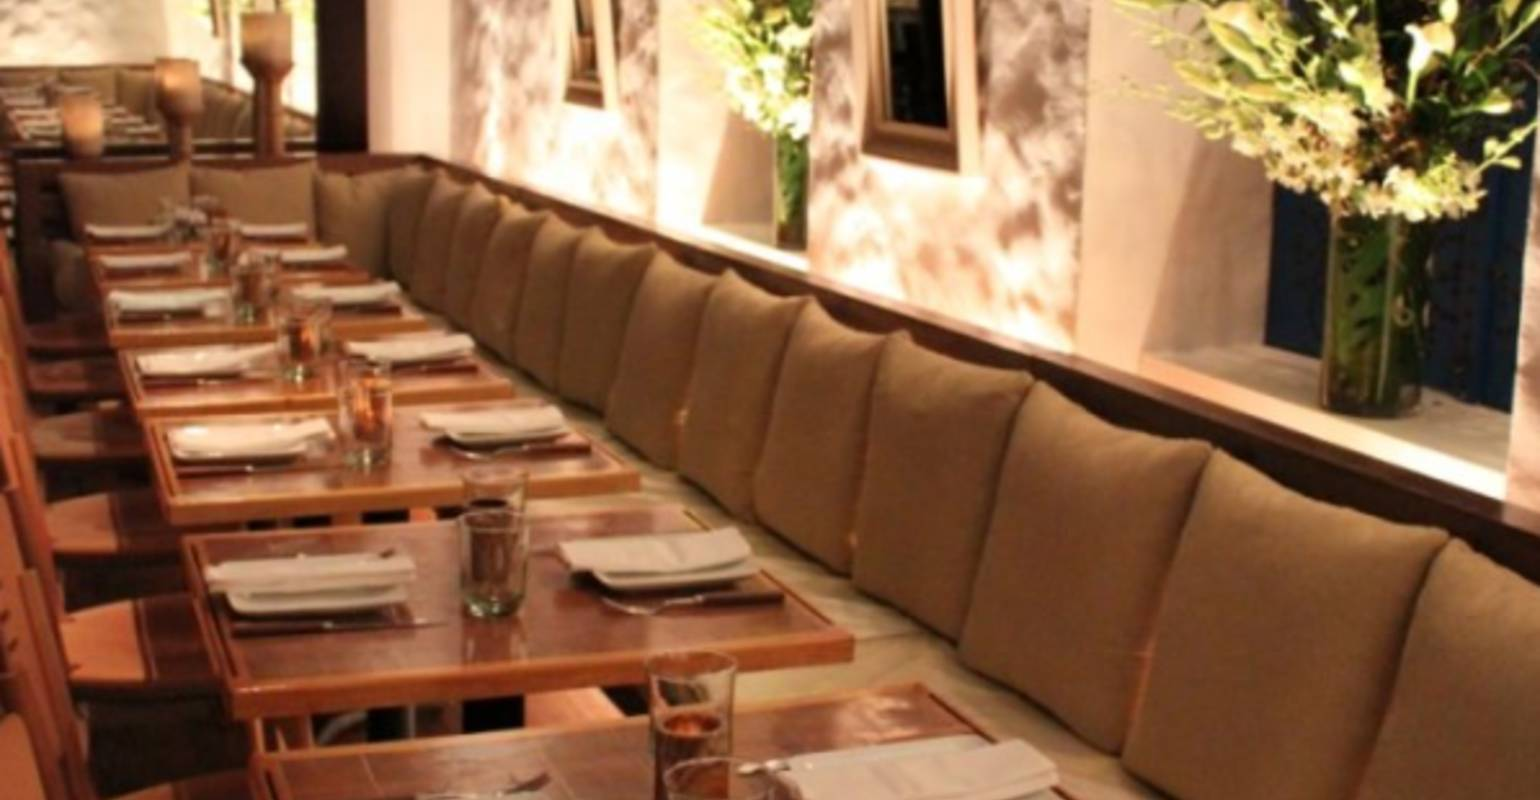 Pylos restaurant reservations table8 pylos pylos pylos pylos pylos publicscrutiny Image collections